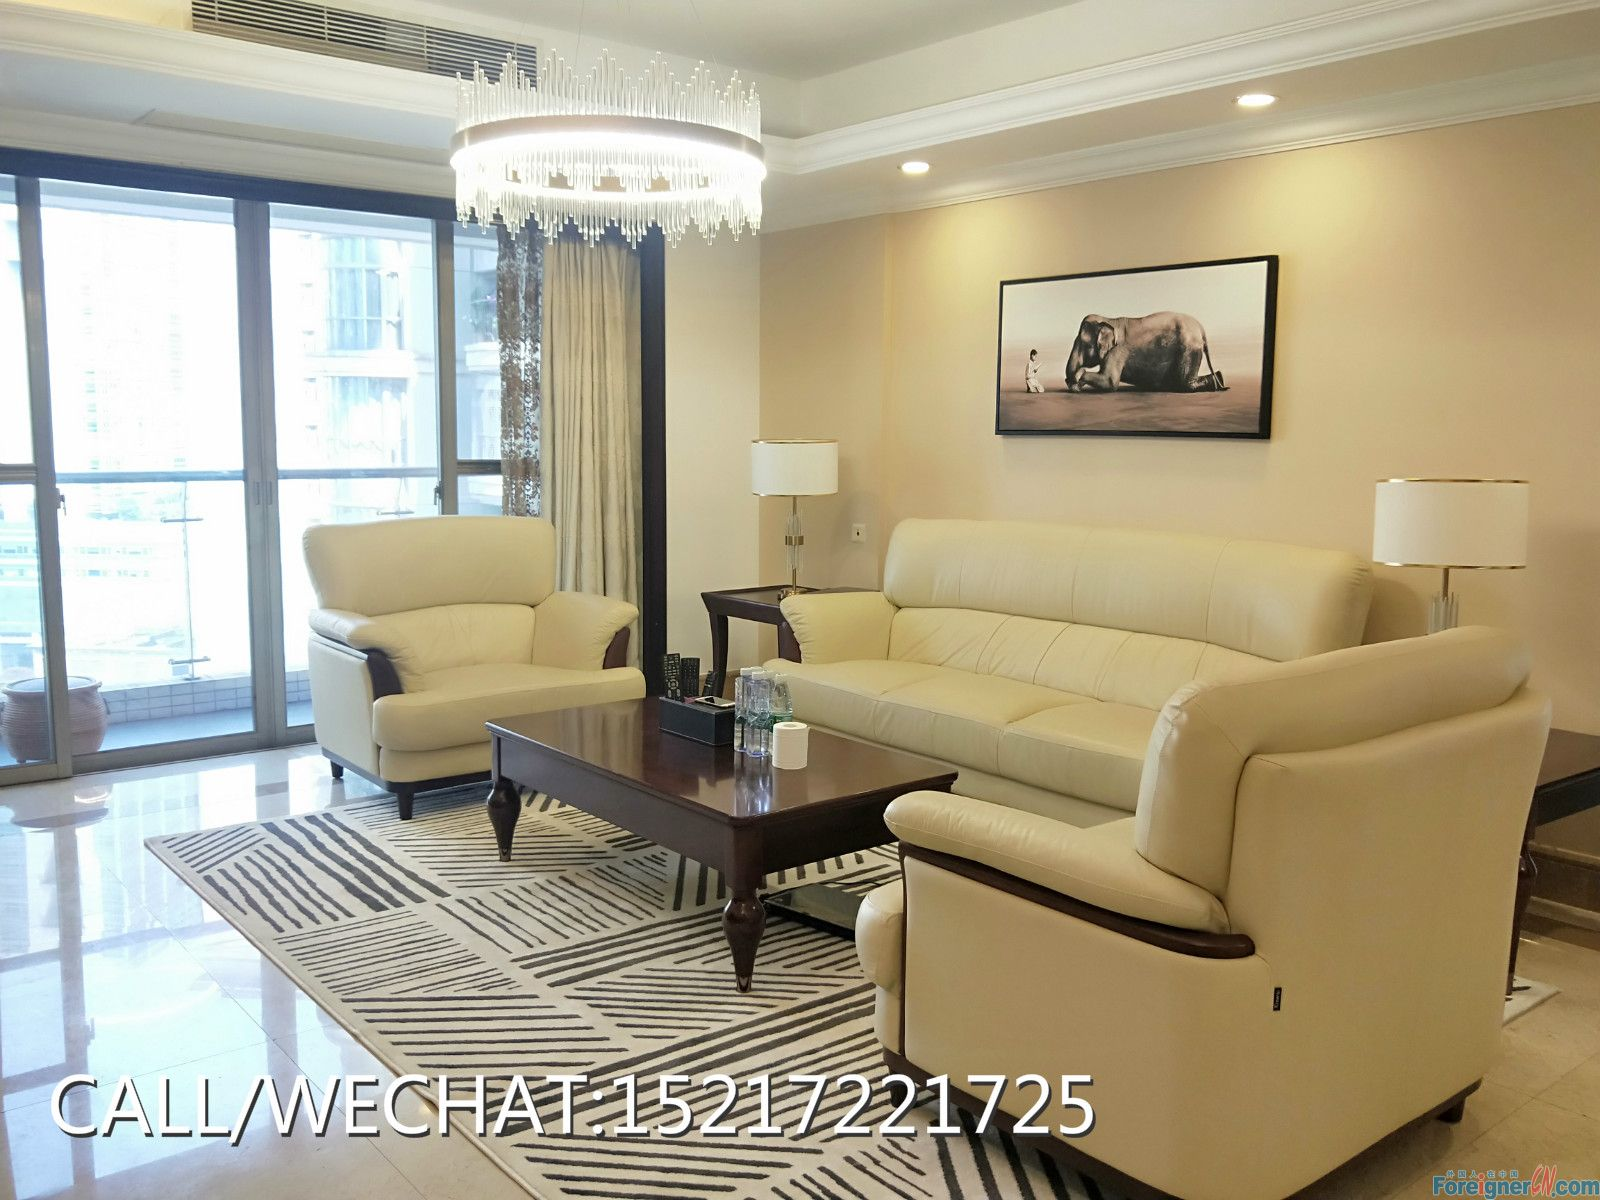 New available of 4bedrooms to rent in zhujiang new town,new furniture with good condition